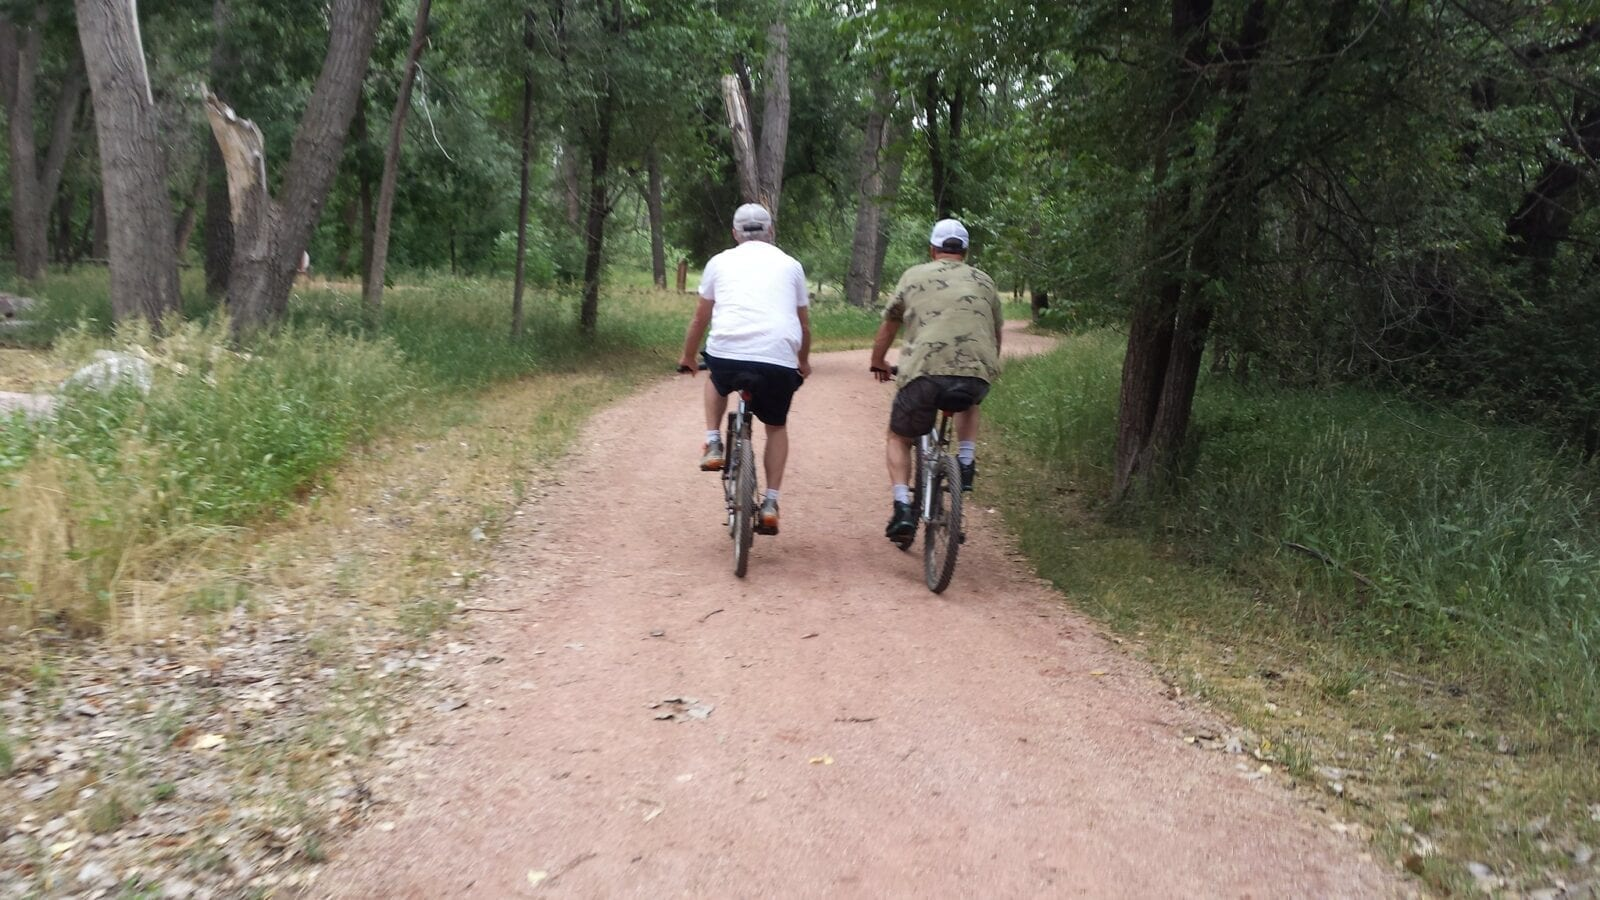 Image of two bikers at the Fountain Creek Regional Park Trail in Fountain, Colorado